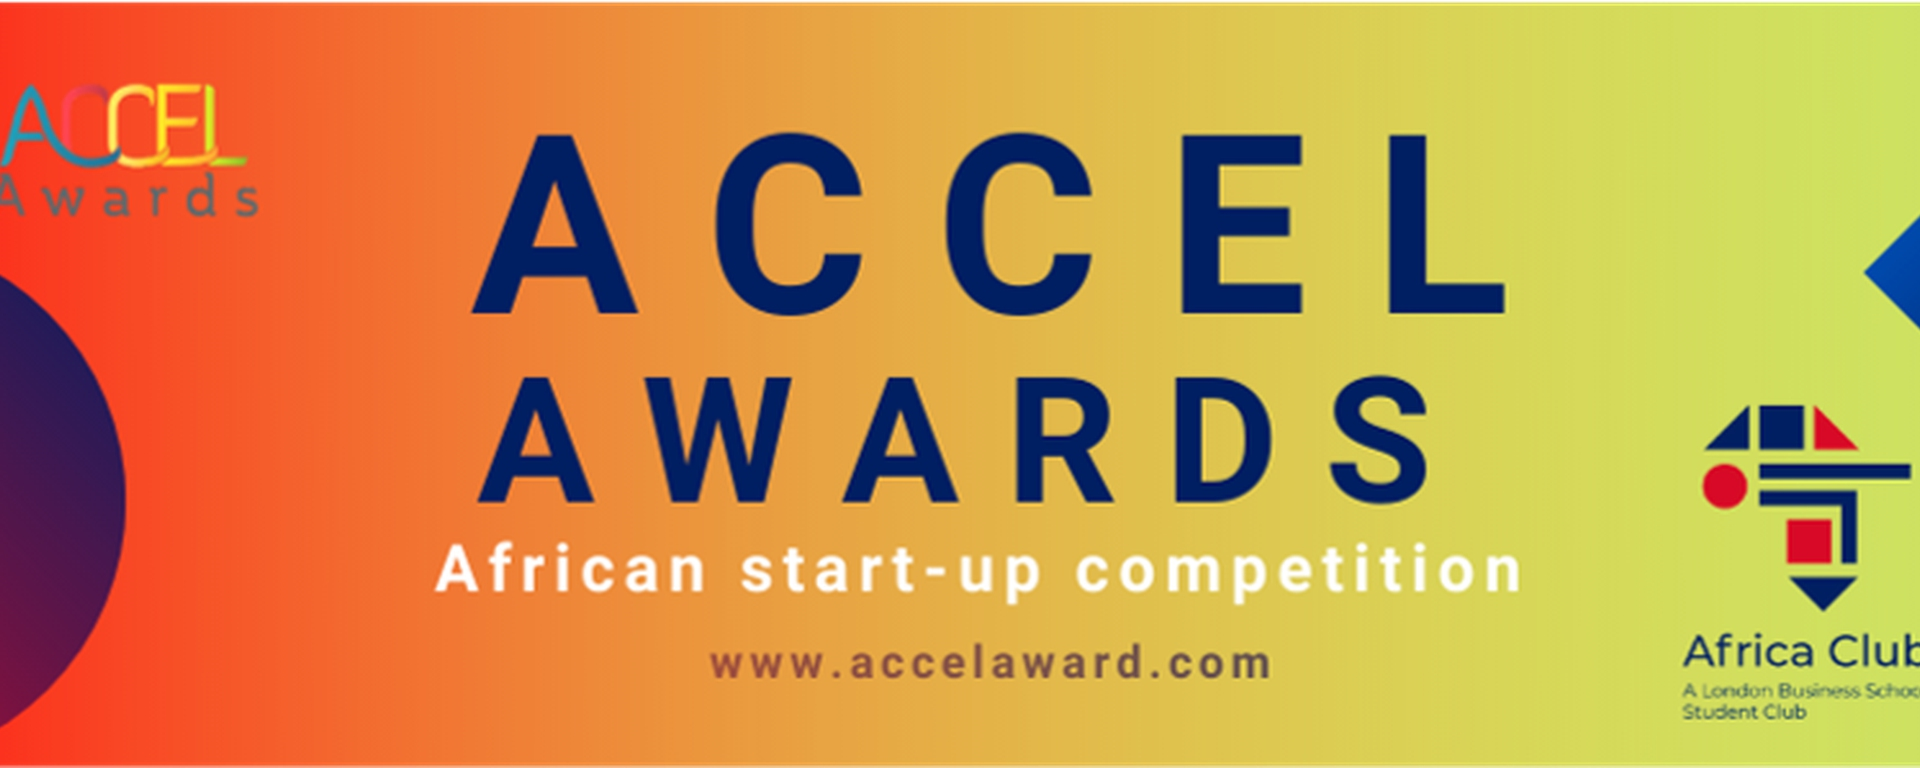 London Business School Africa Club - Accel Awards Start-up Competition Movemeback African initiative cover image